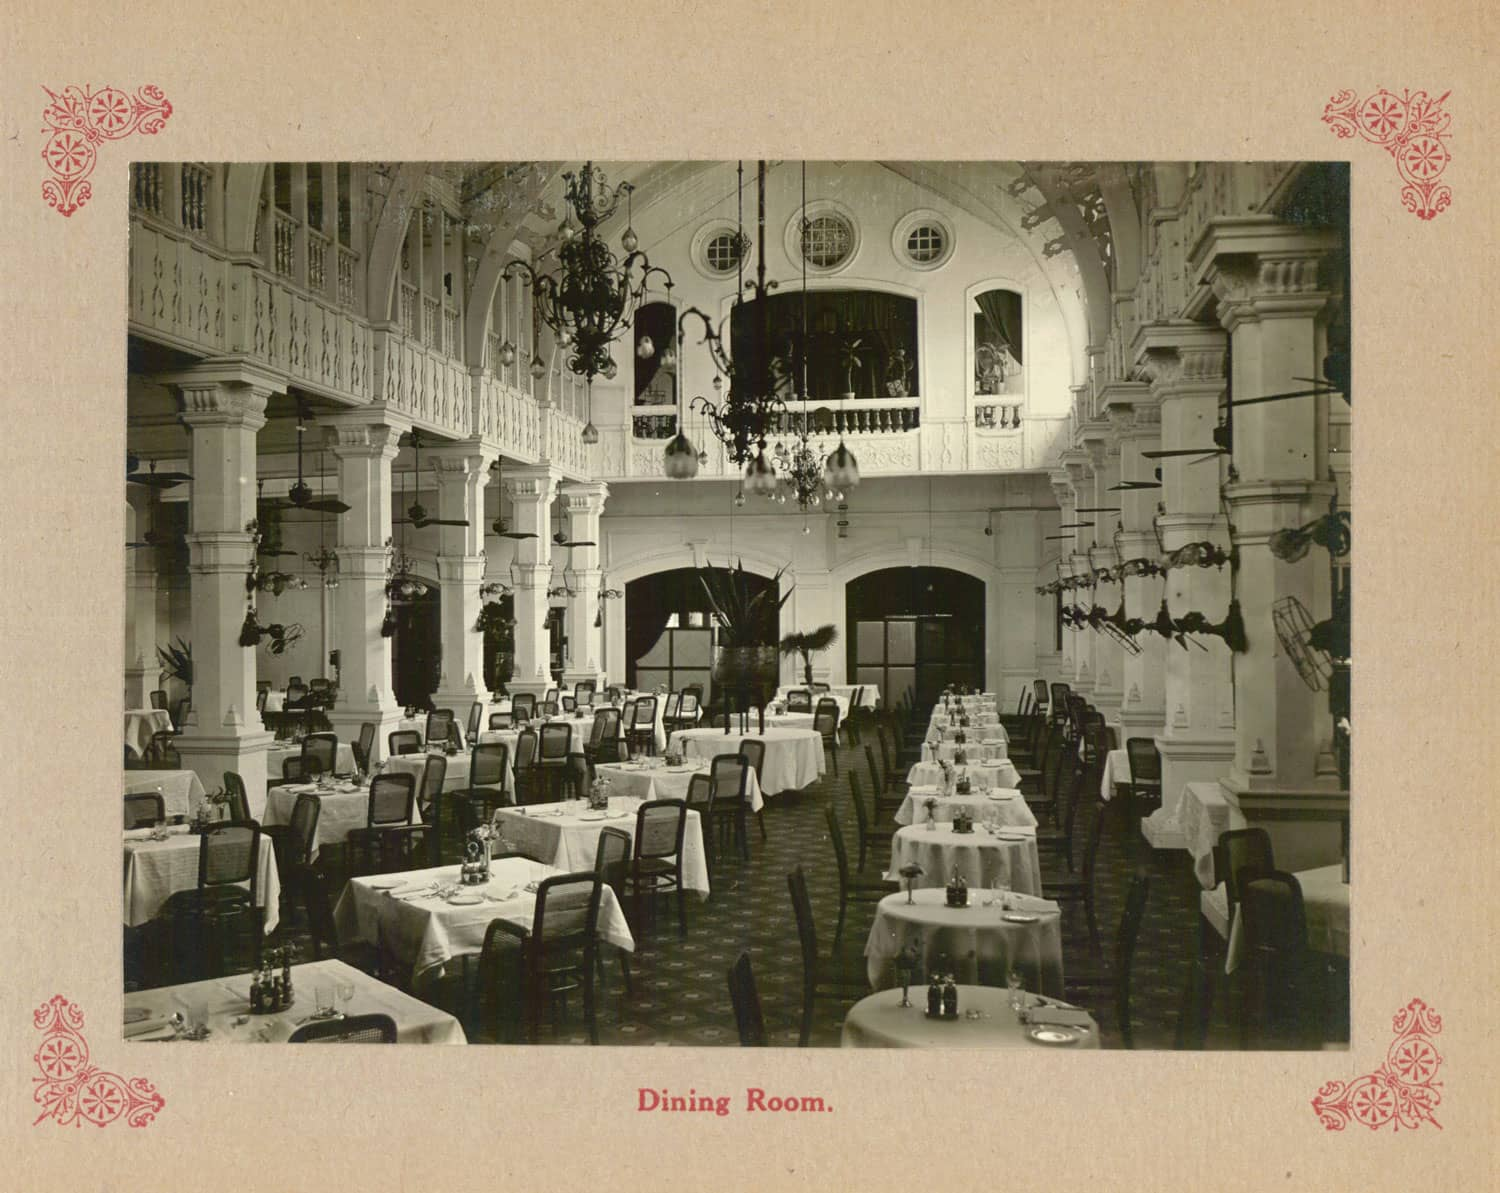 Dining Room at Grand Hotel de l'Europe, 1910s